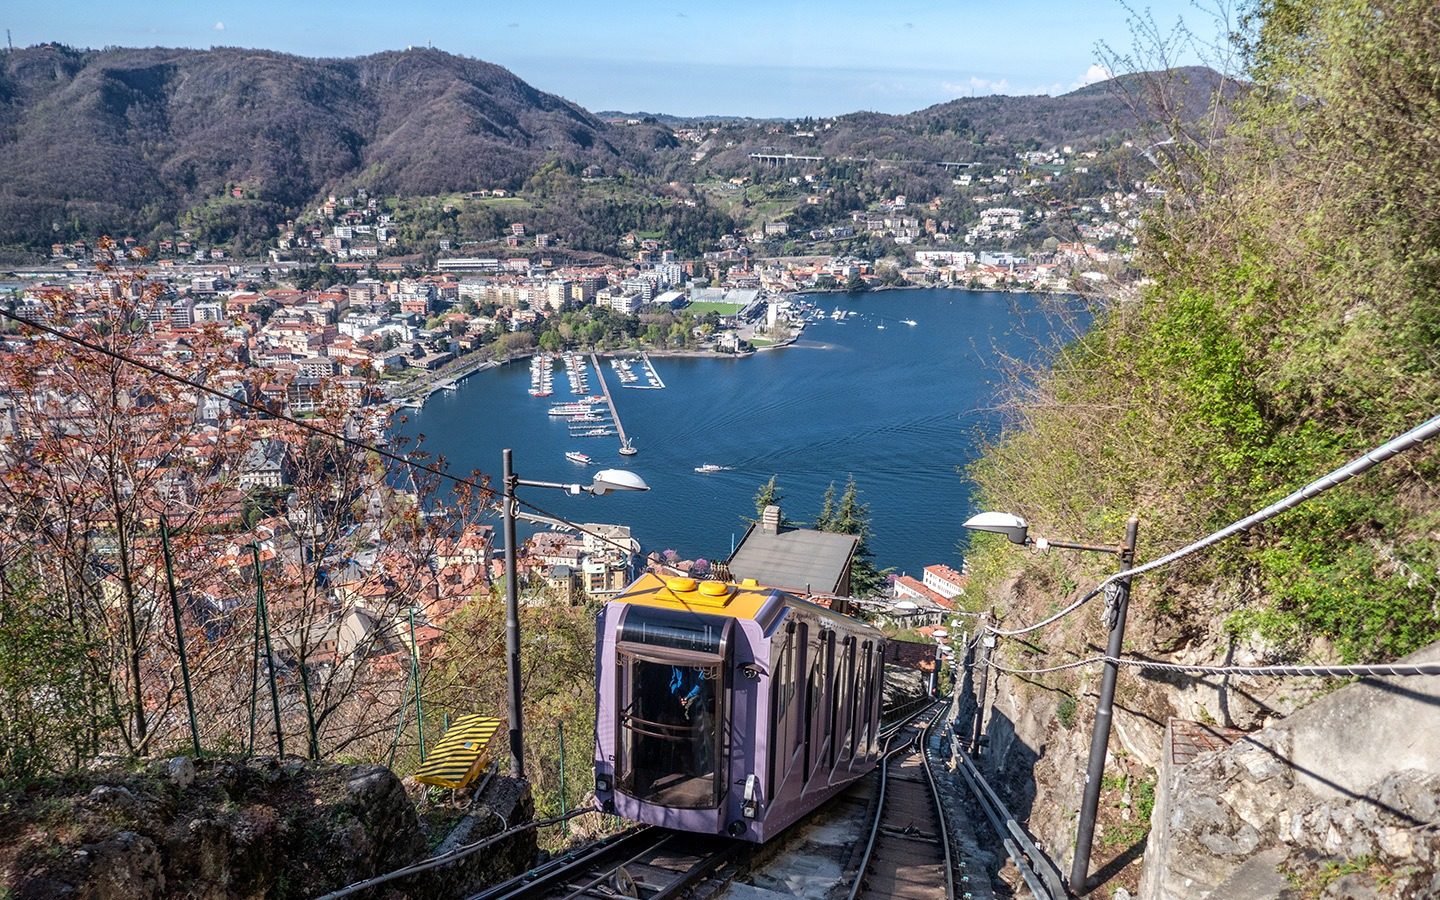 The funicular railway from Como city to Brunate